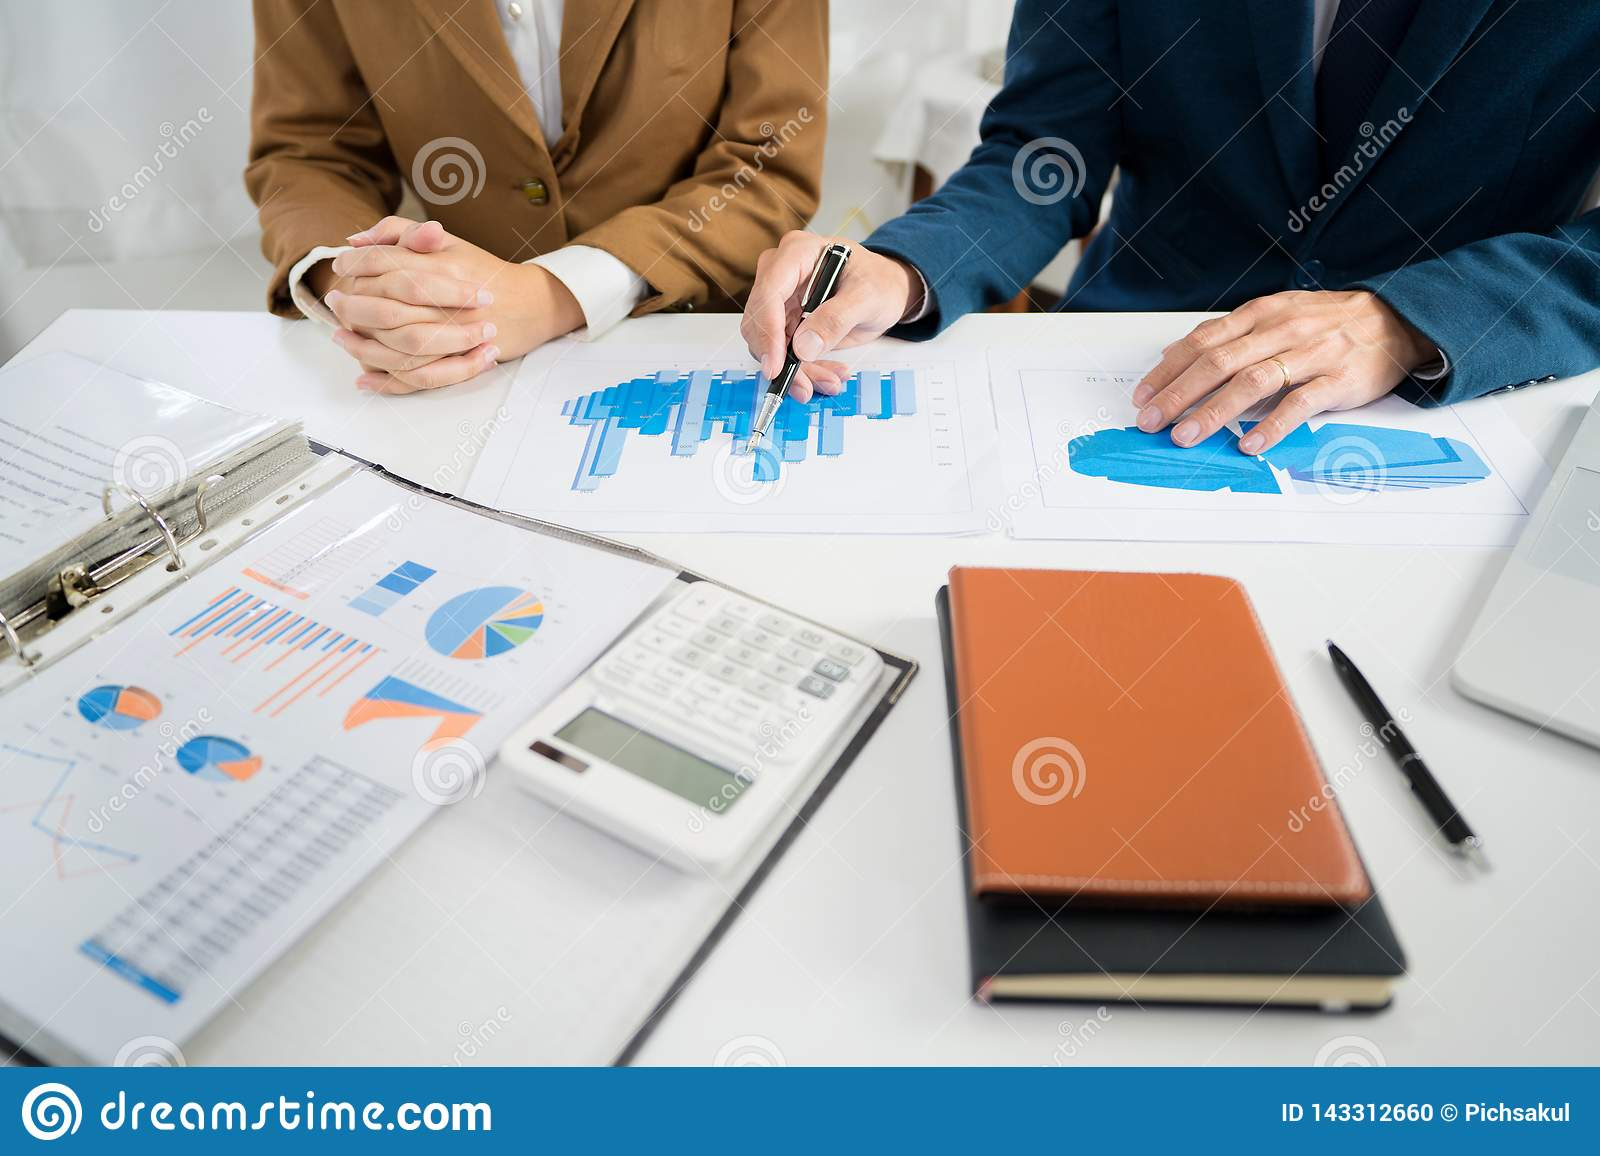 Business Corporate team brainstorming, Planning Strategy having a discussion Analysis investment researching with chart at office